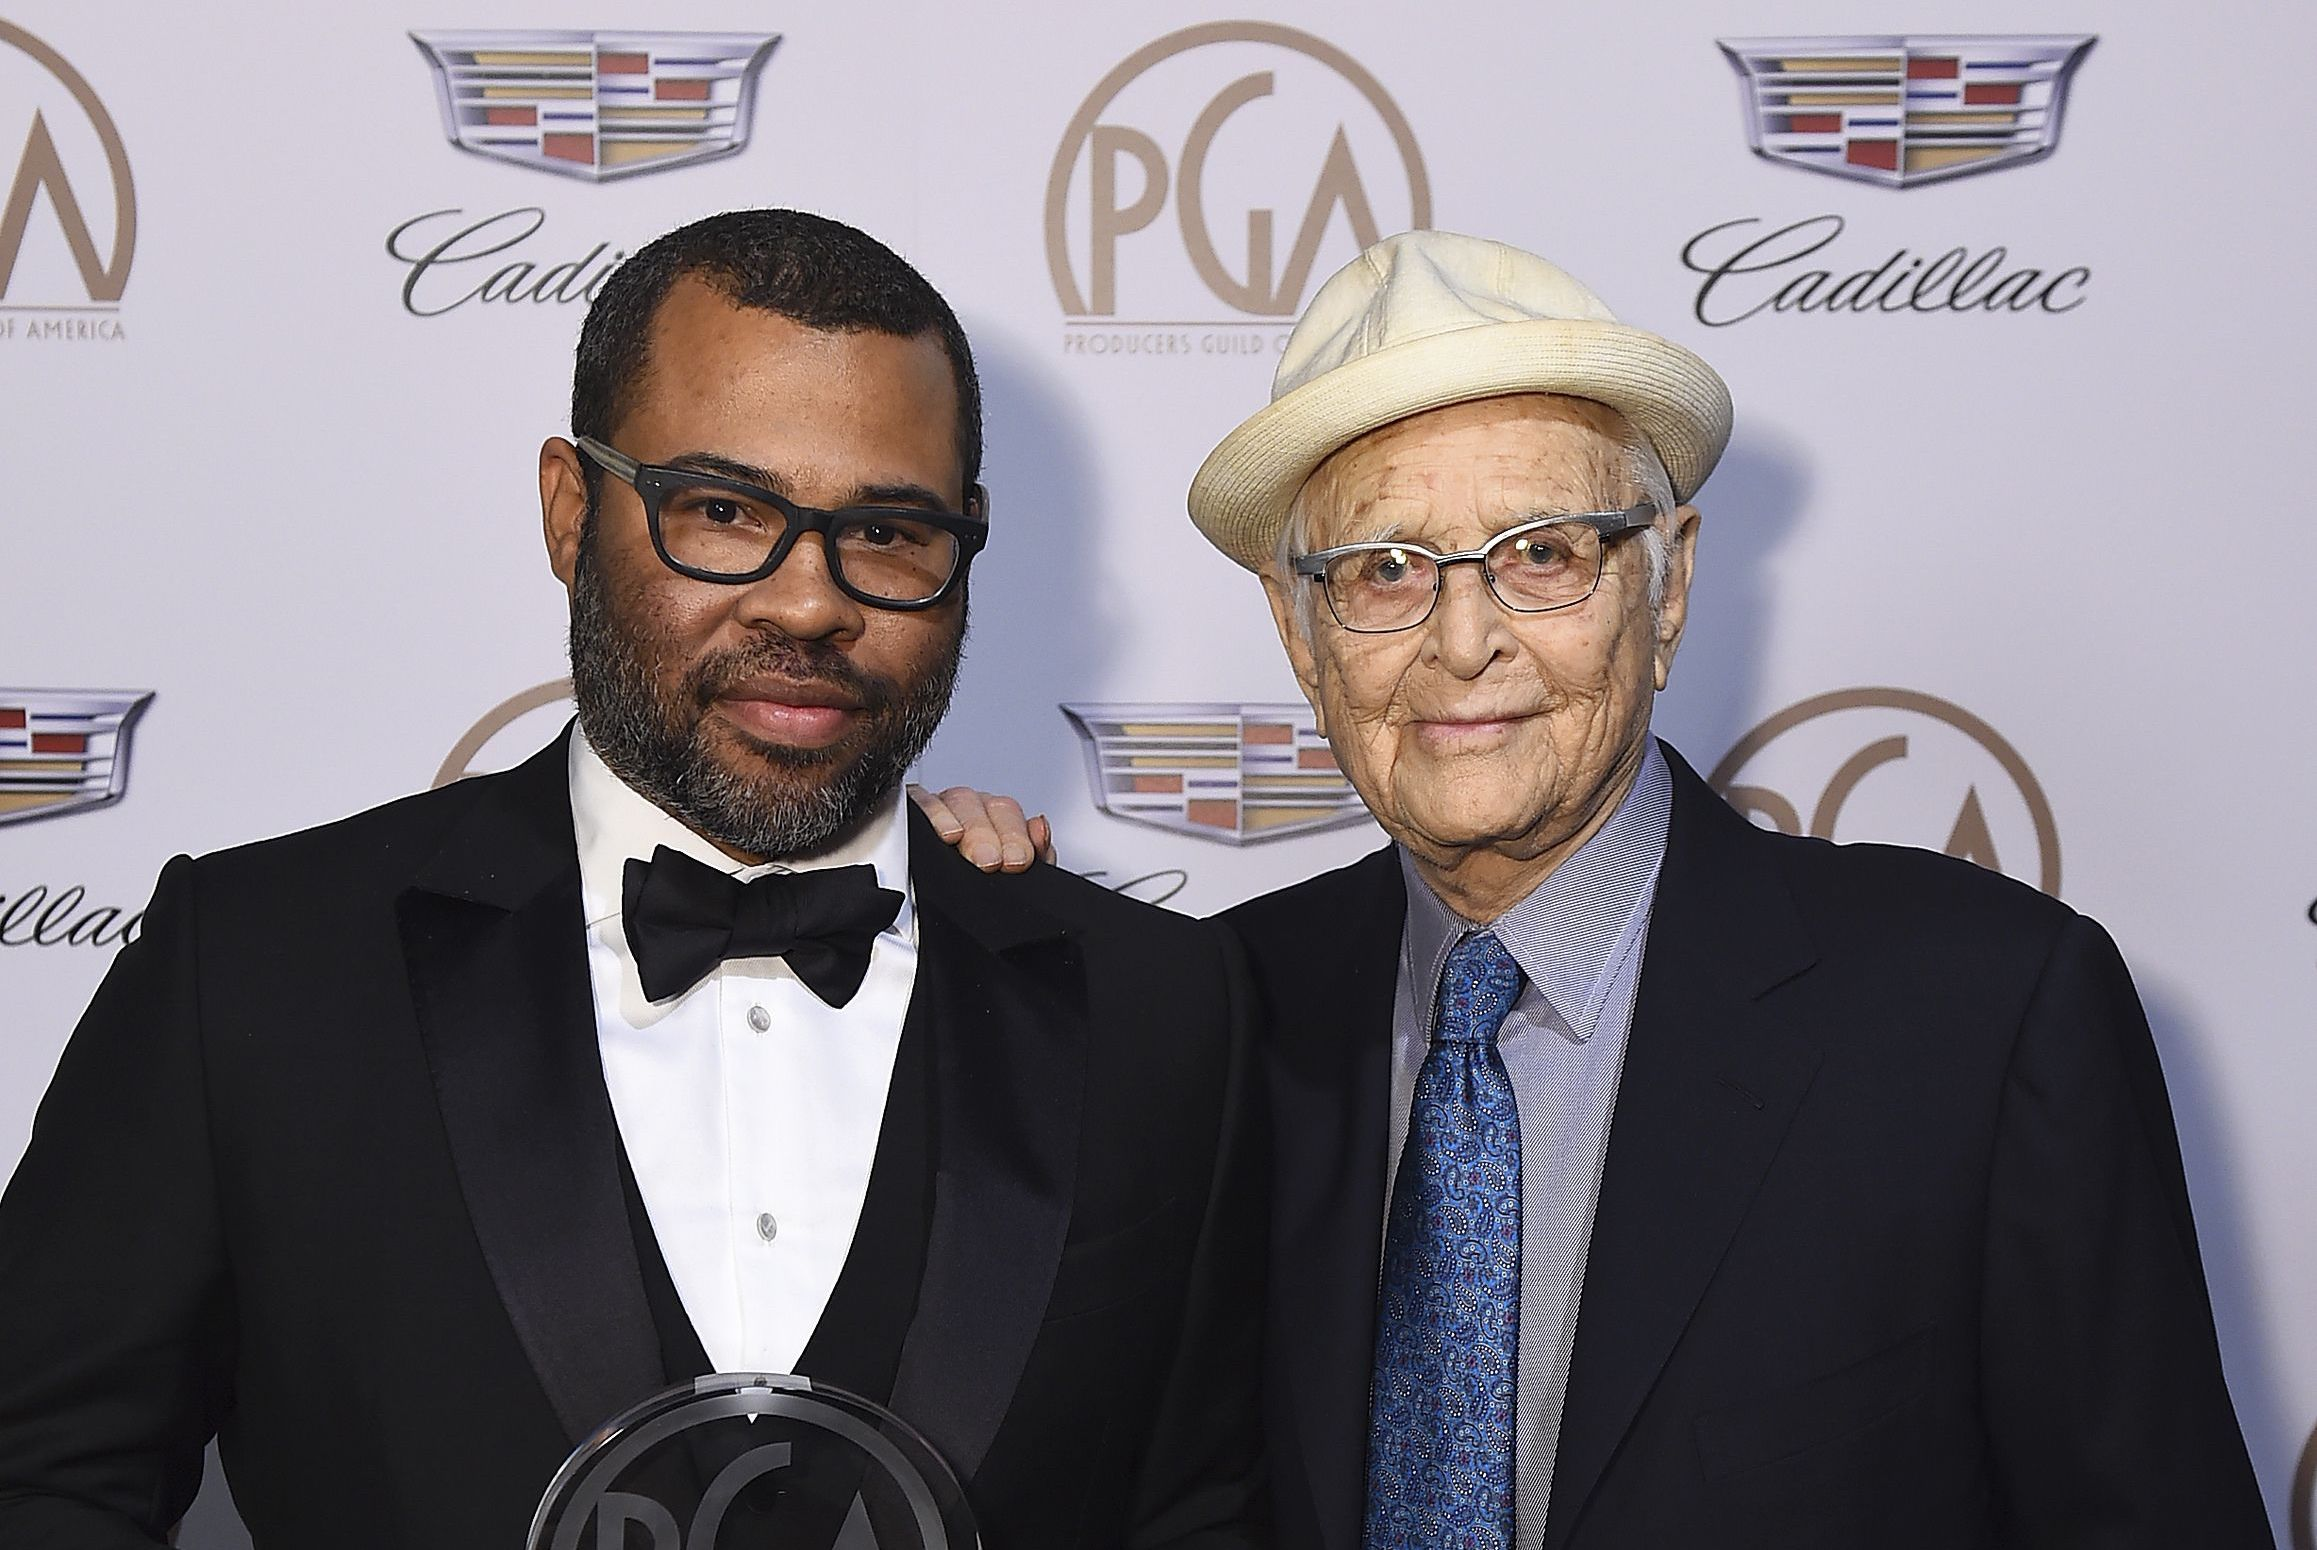 Jordan Peele, Norman Lear. Jordan Peele, recipient of the Stanley Kramer award, left, and Norman Lear attend the 29th Producers Guild Awards presented by Cadillac at Beverly Hilton, in Beverly Hills, Calif29th Producers Guild Awards presented by Cadillac - Inside, Beverly Hills, USA - 20 Jan 2018